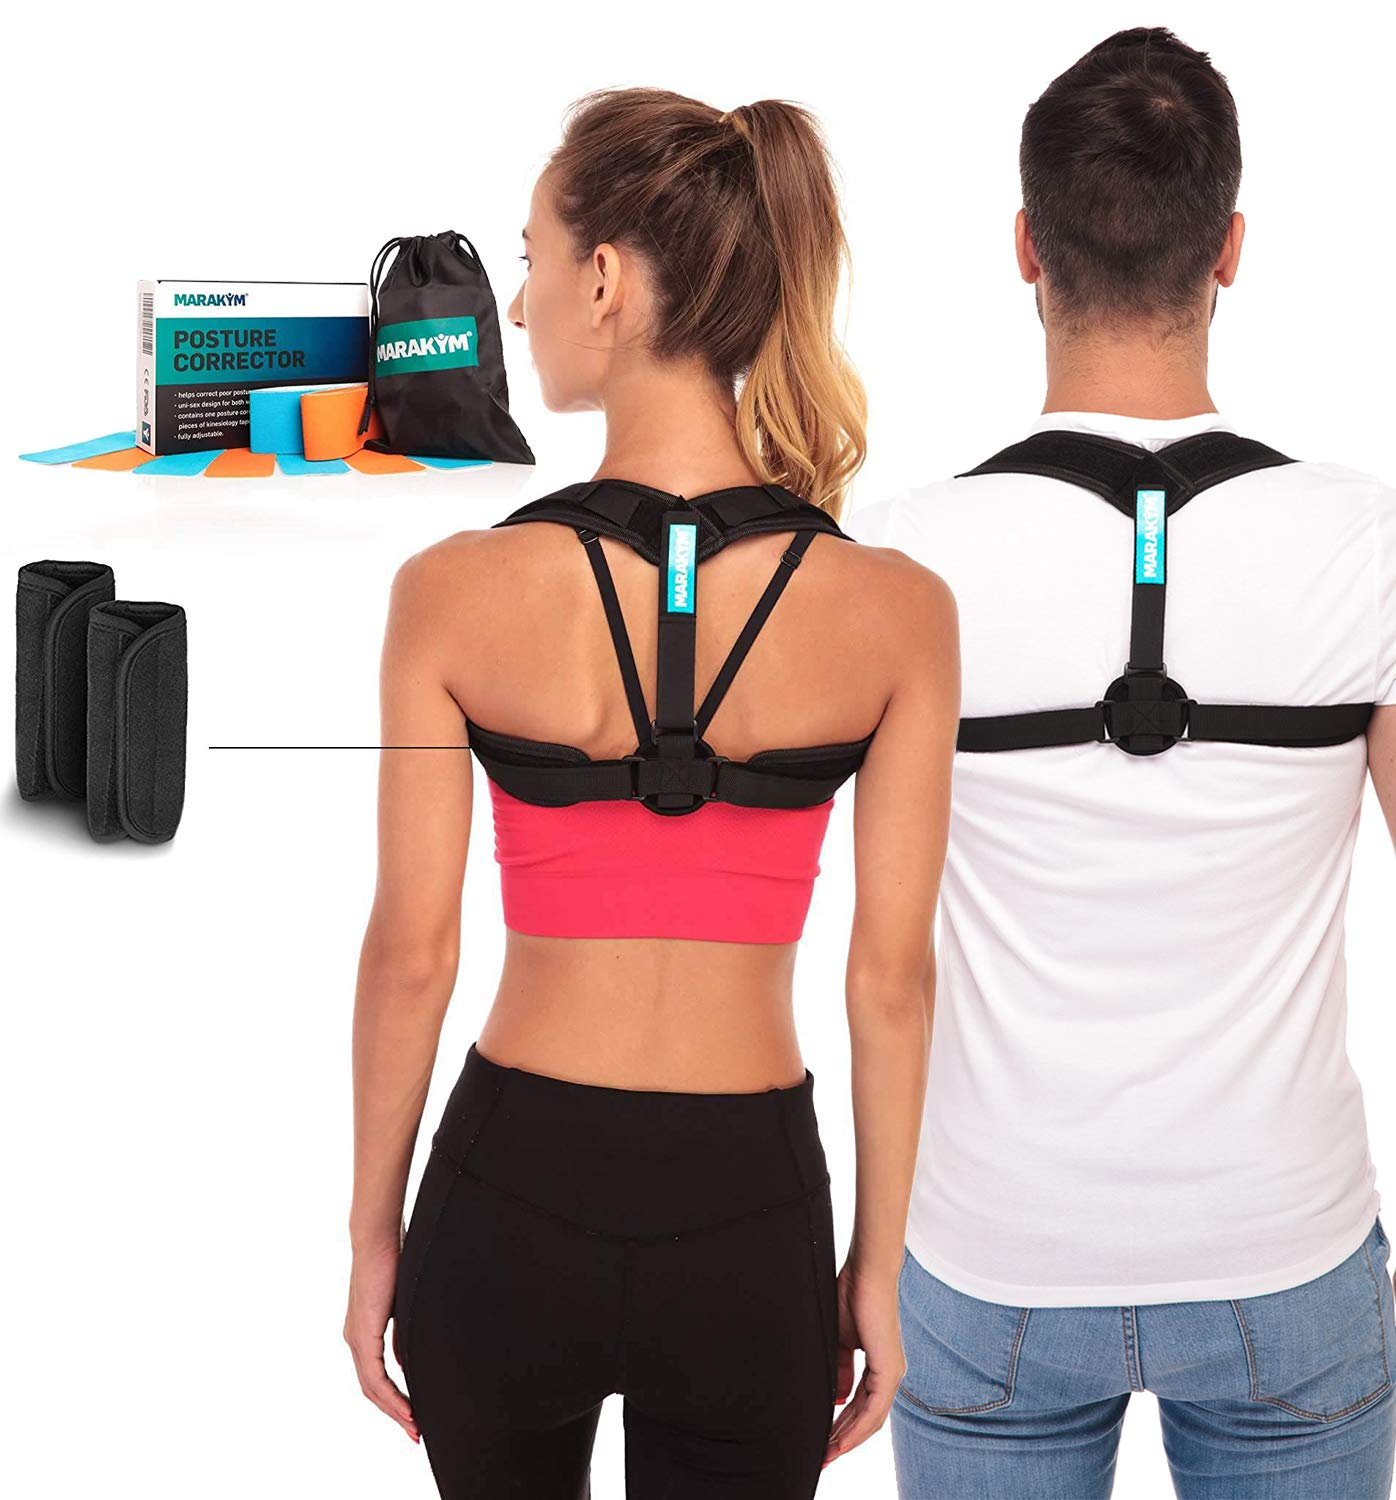 Posture corrector-adjustable clavicle